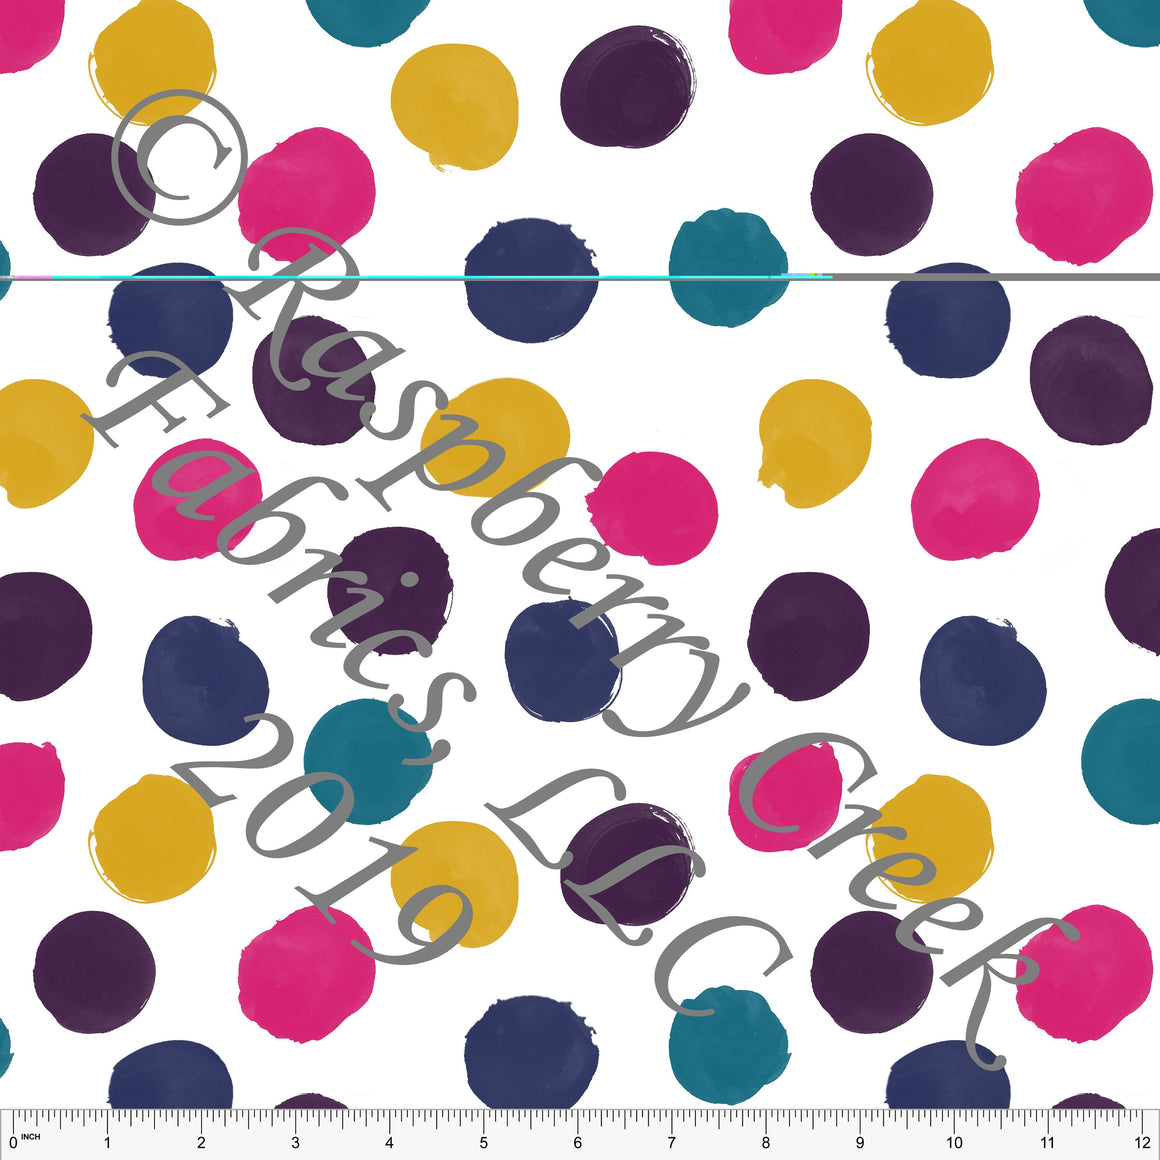 Fuchsia Mustard Teal Navy and Eggplant Large Polka Dots By Brittney Laidlaw for Club Fabrics - Raspberry Creek Fabrics